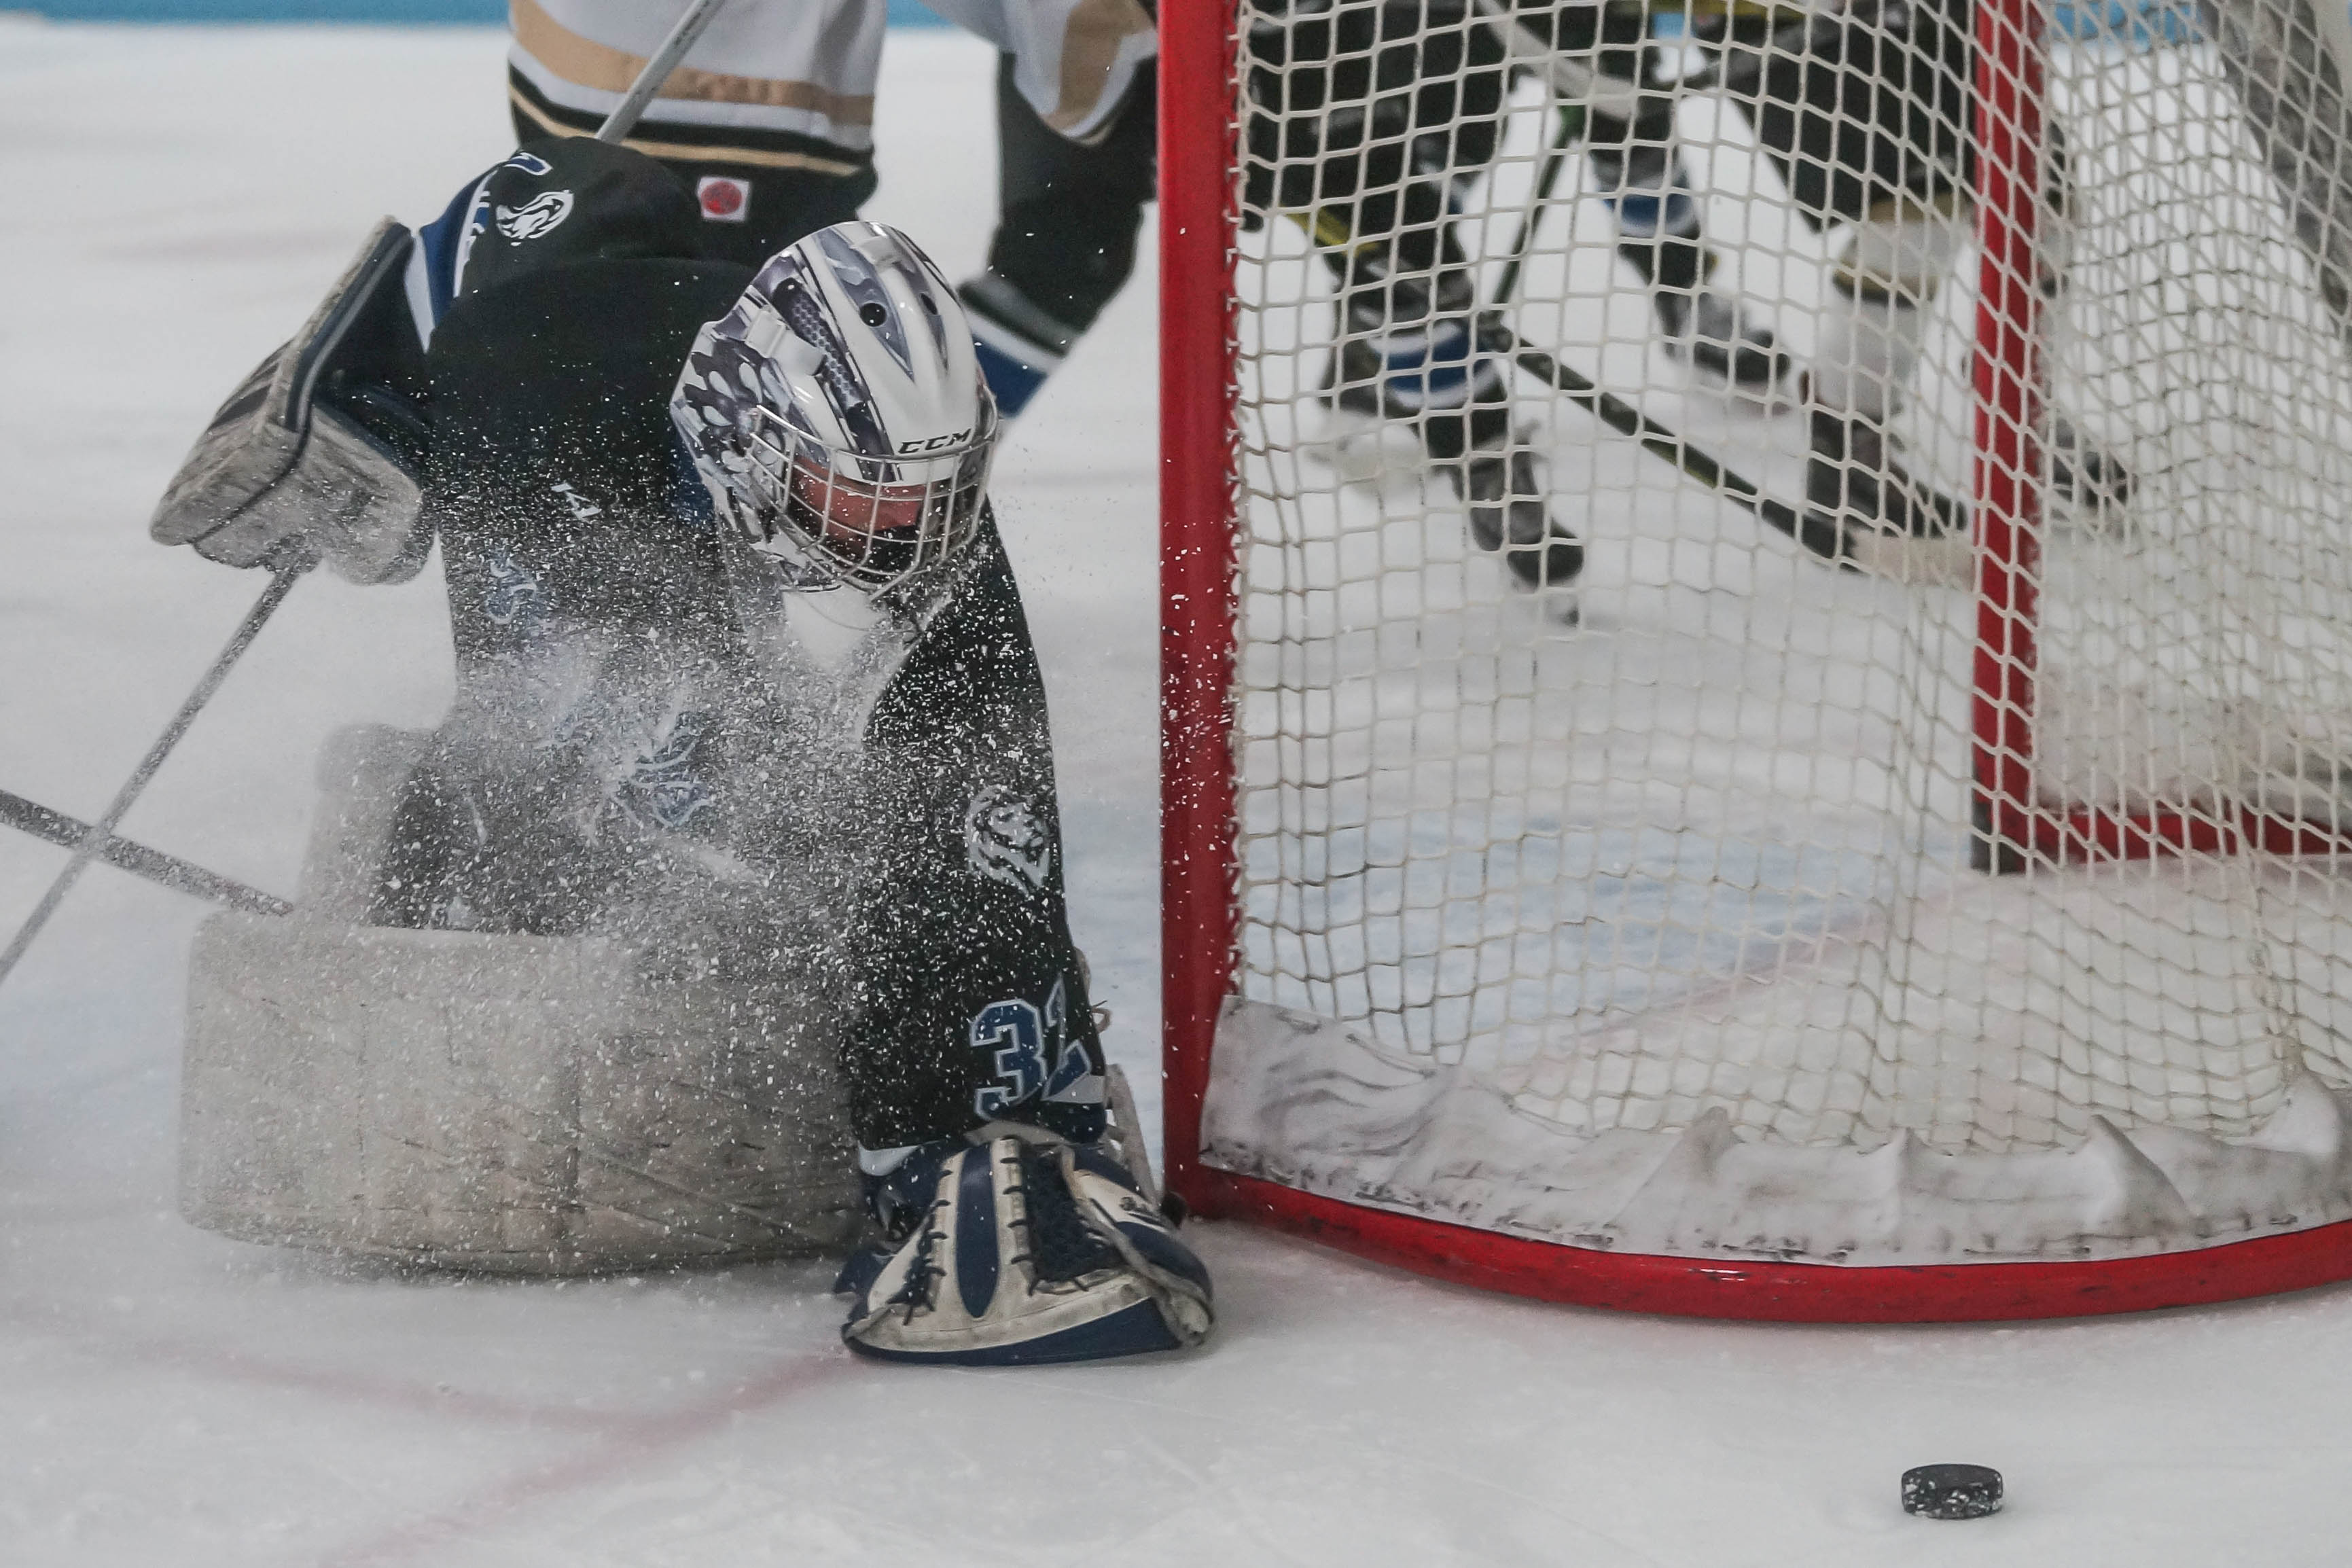 Royals goalie Anna Julius searches for a loose puck during play against East Ridge on Jan 4. Photo by Korey McDermott, SportEngine